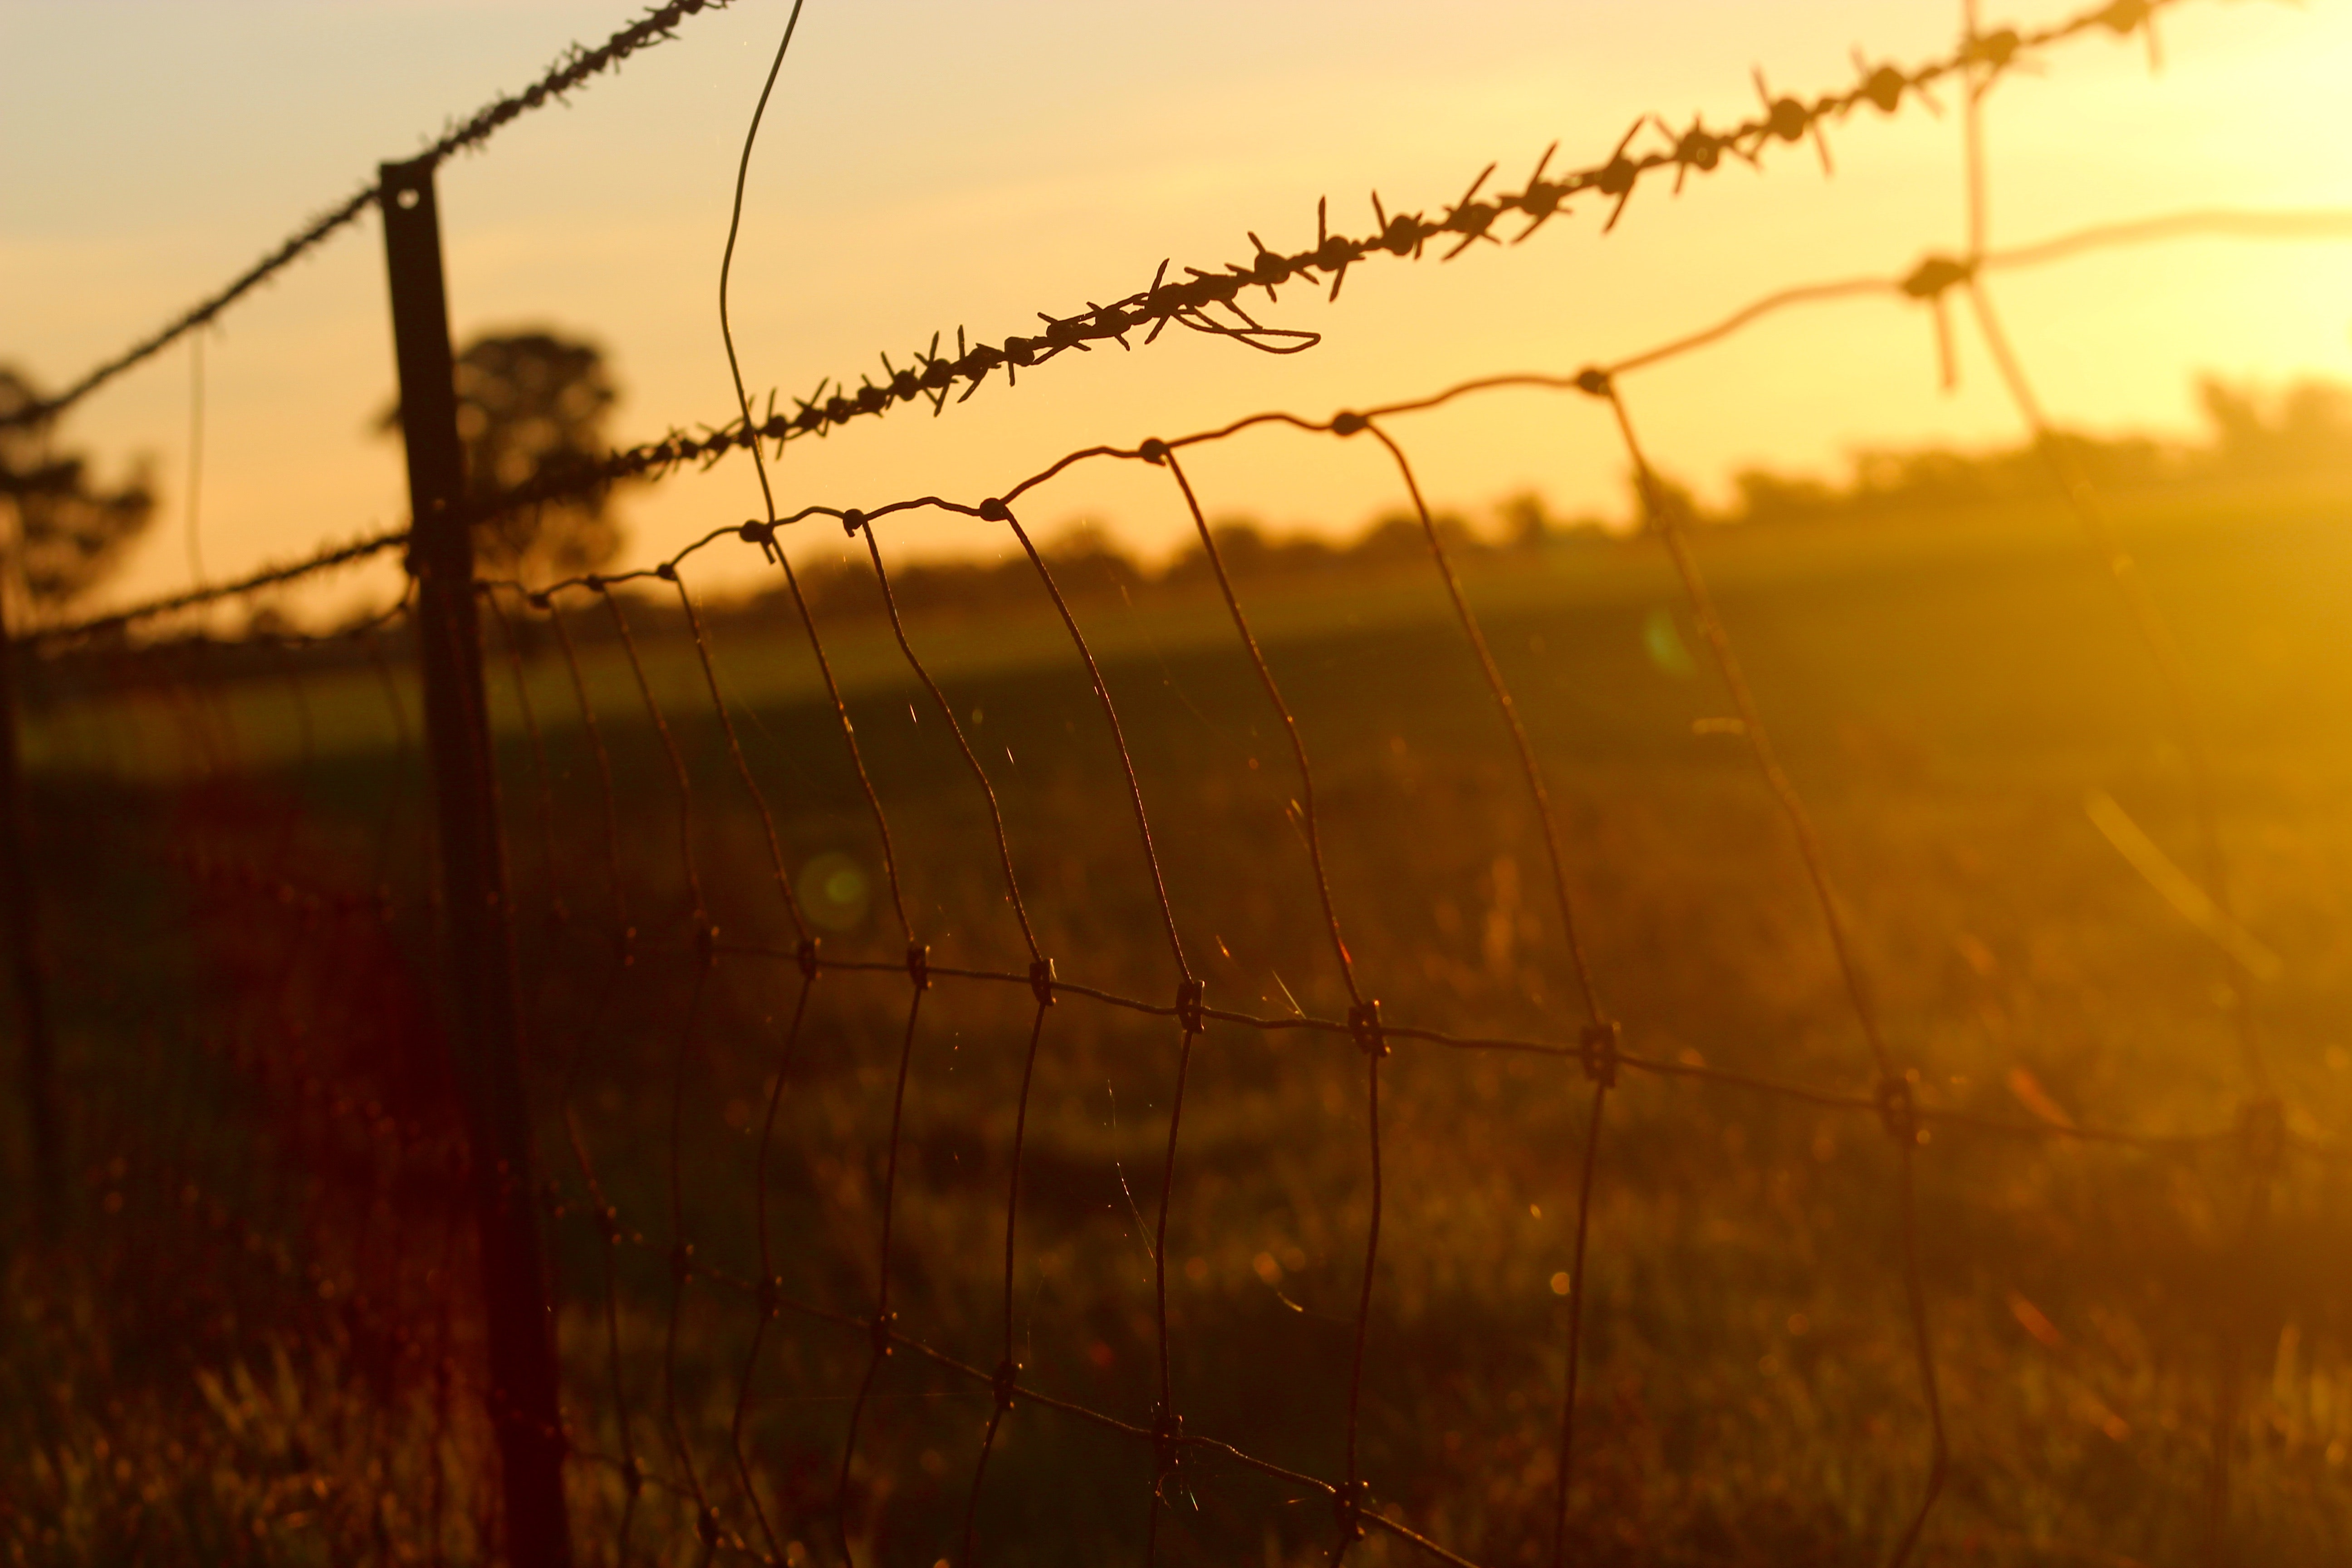 barbed-wire-fence-wire-mesh-110649